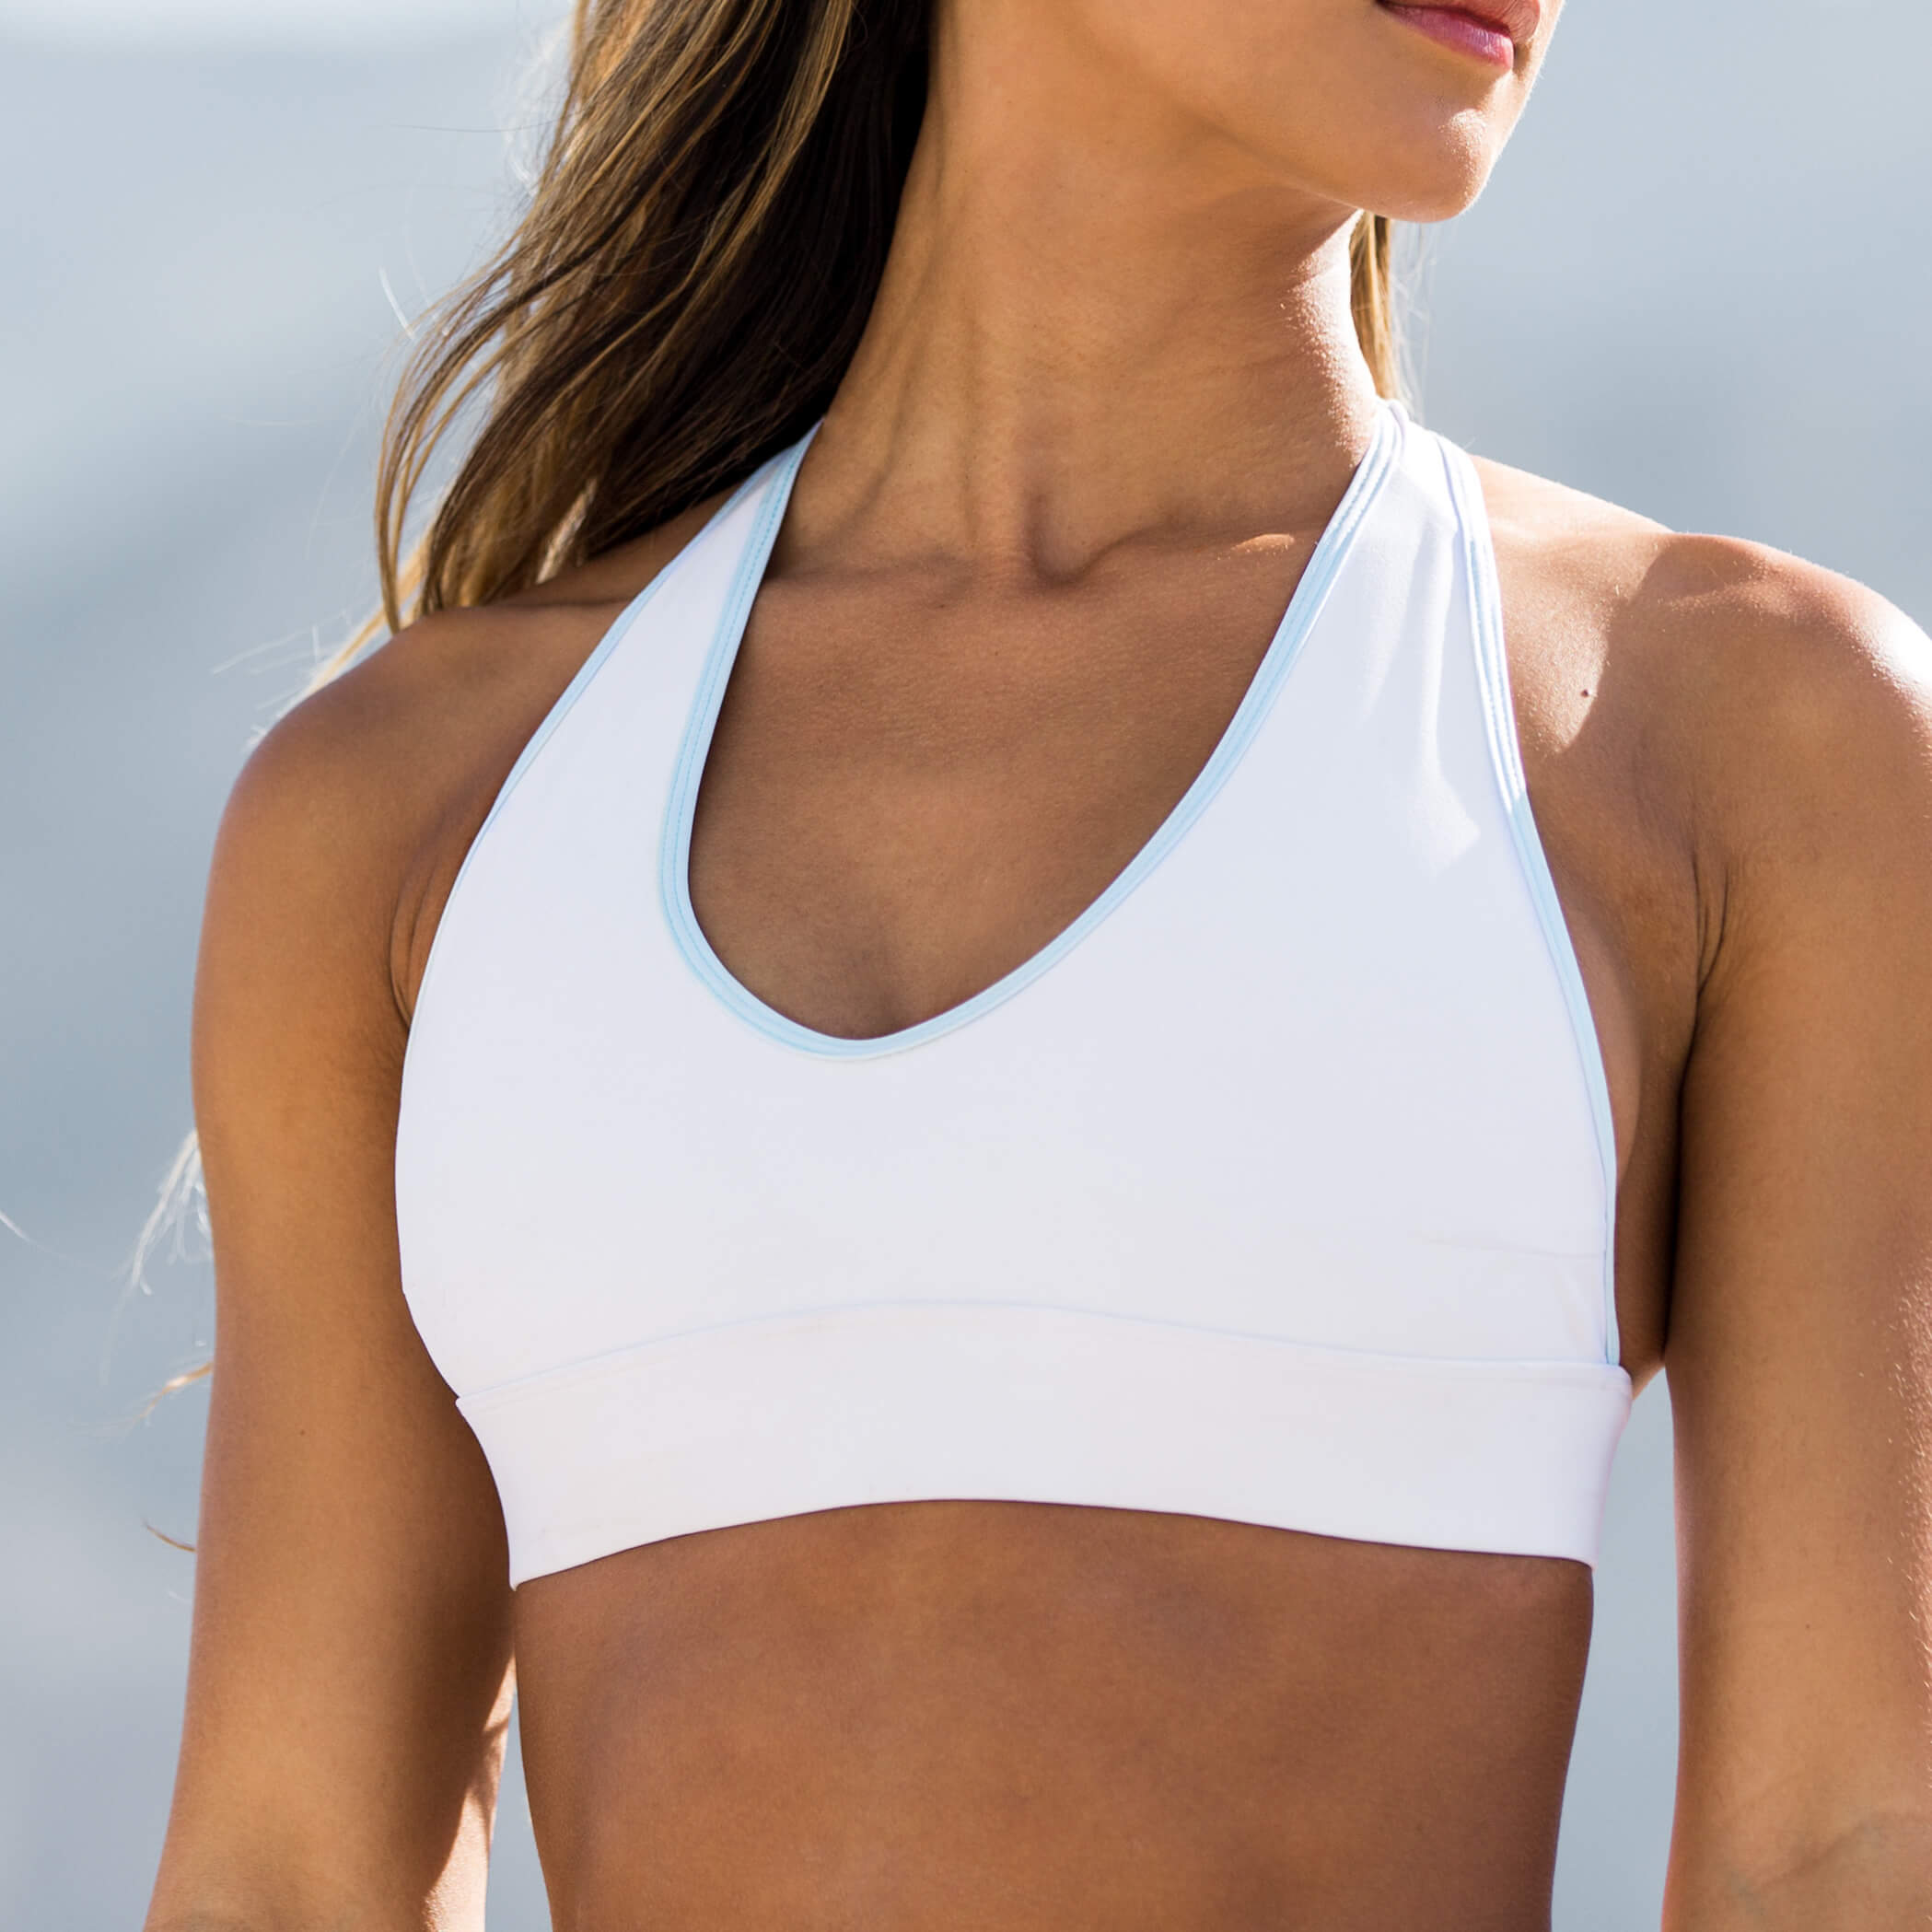 BRAS UP TO 50% OFF